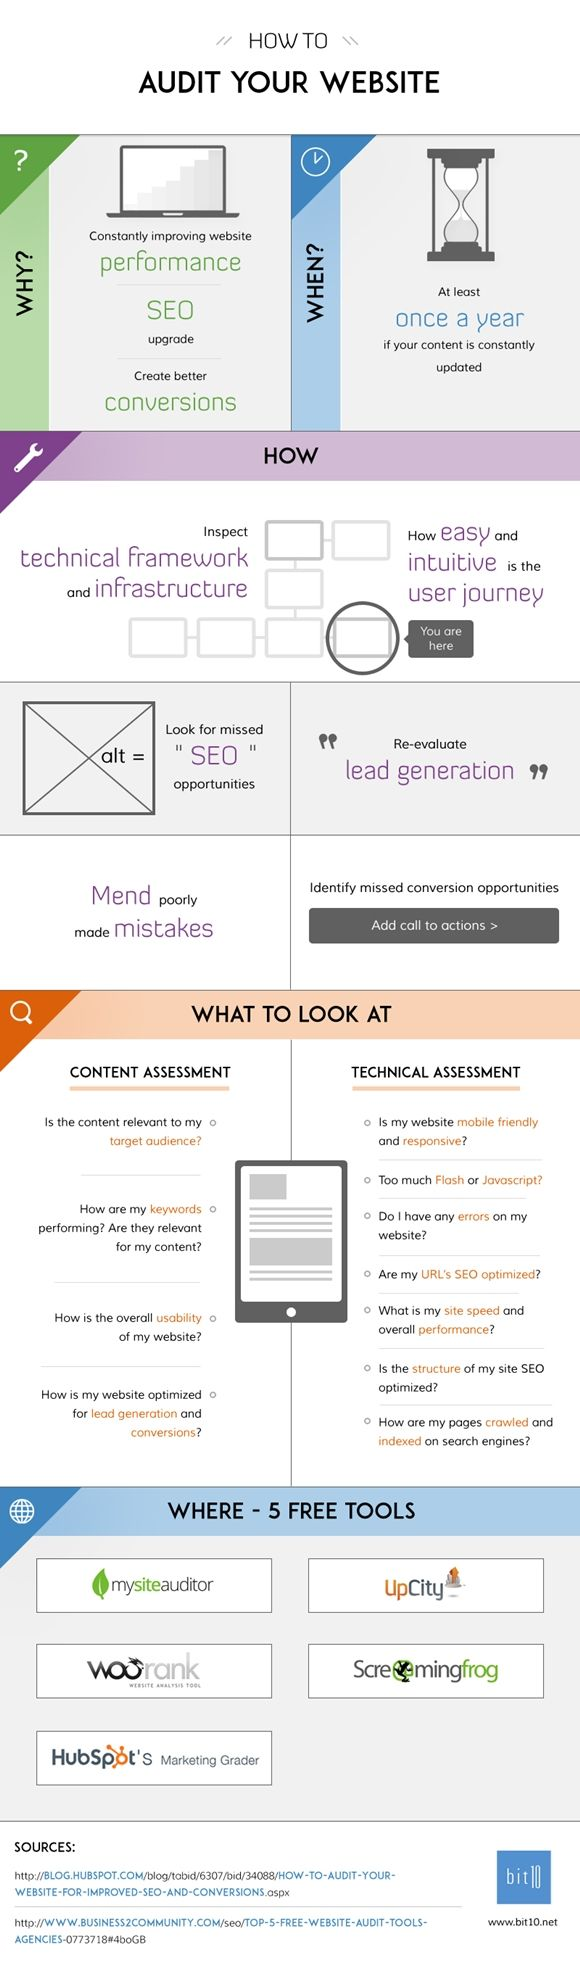 how to audit your website #infografia #infographic #marketing vía: bit10.net